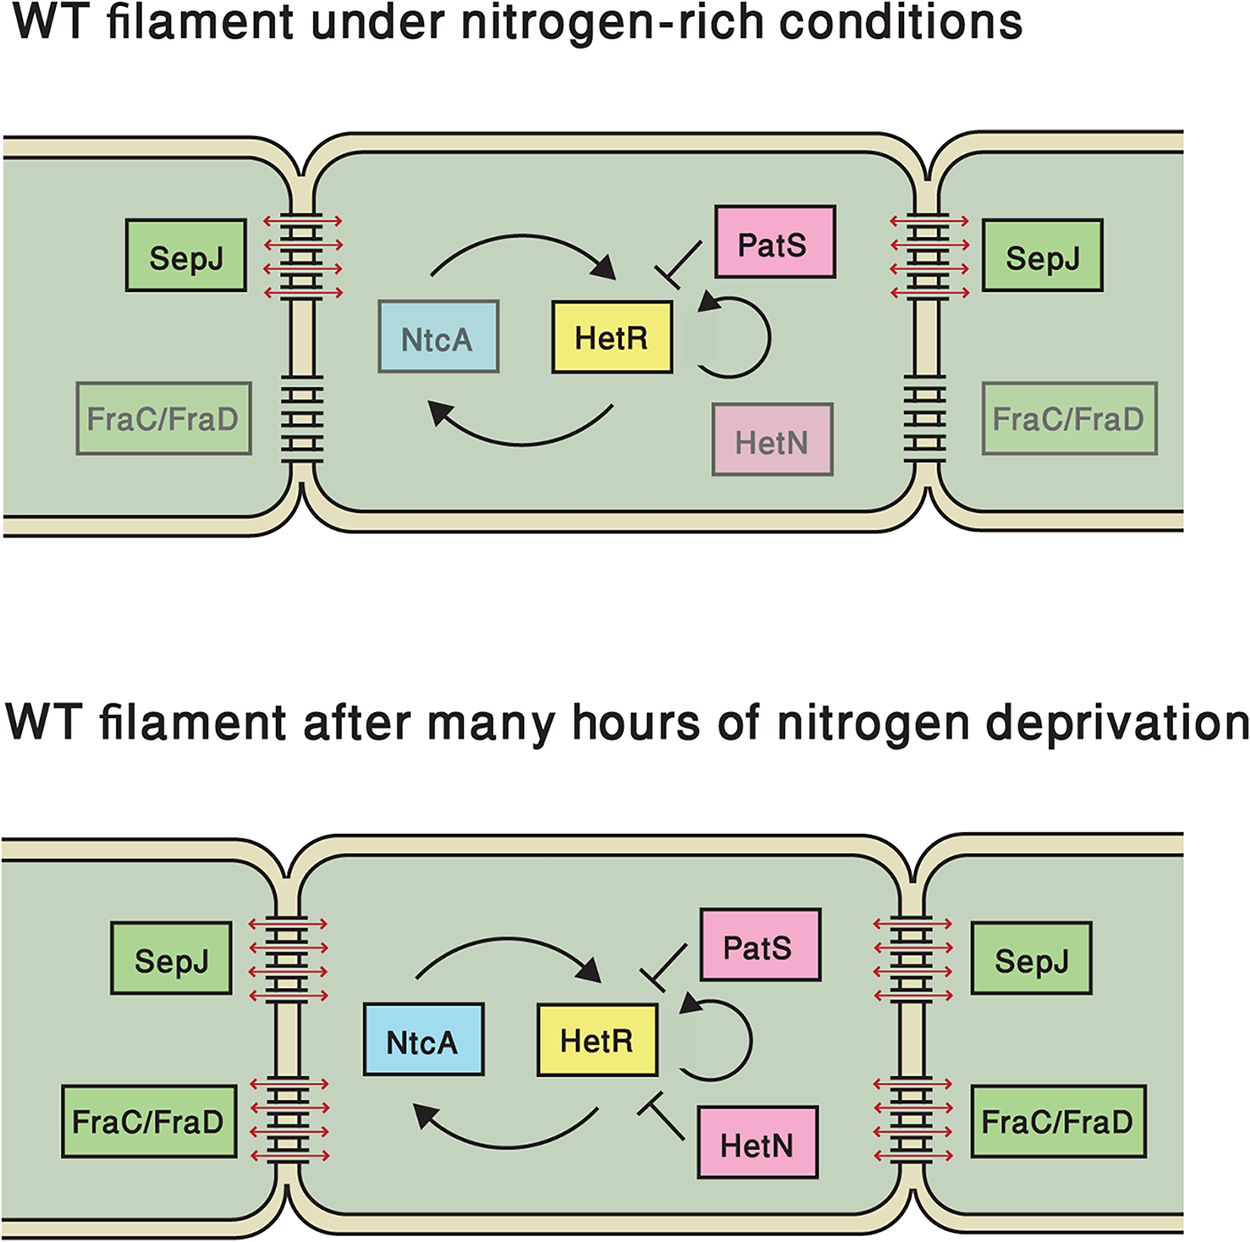 Elements that regulate <i>hetR</i> expression in this study, both under nitrogen-replete conditions and following nitrogen deprivation.